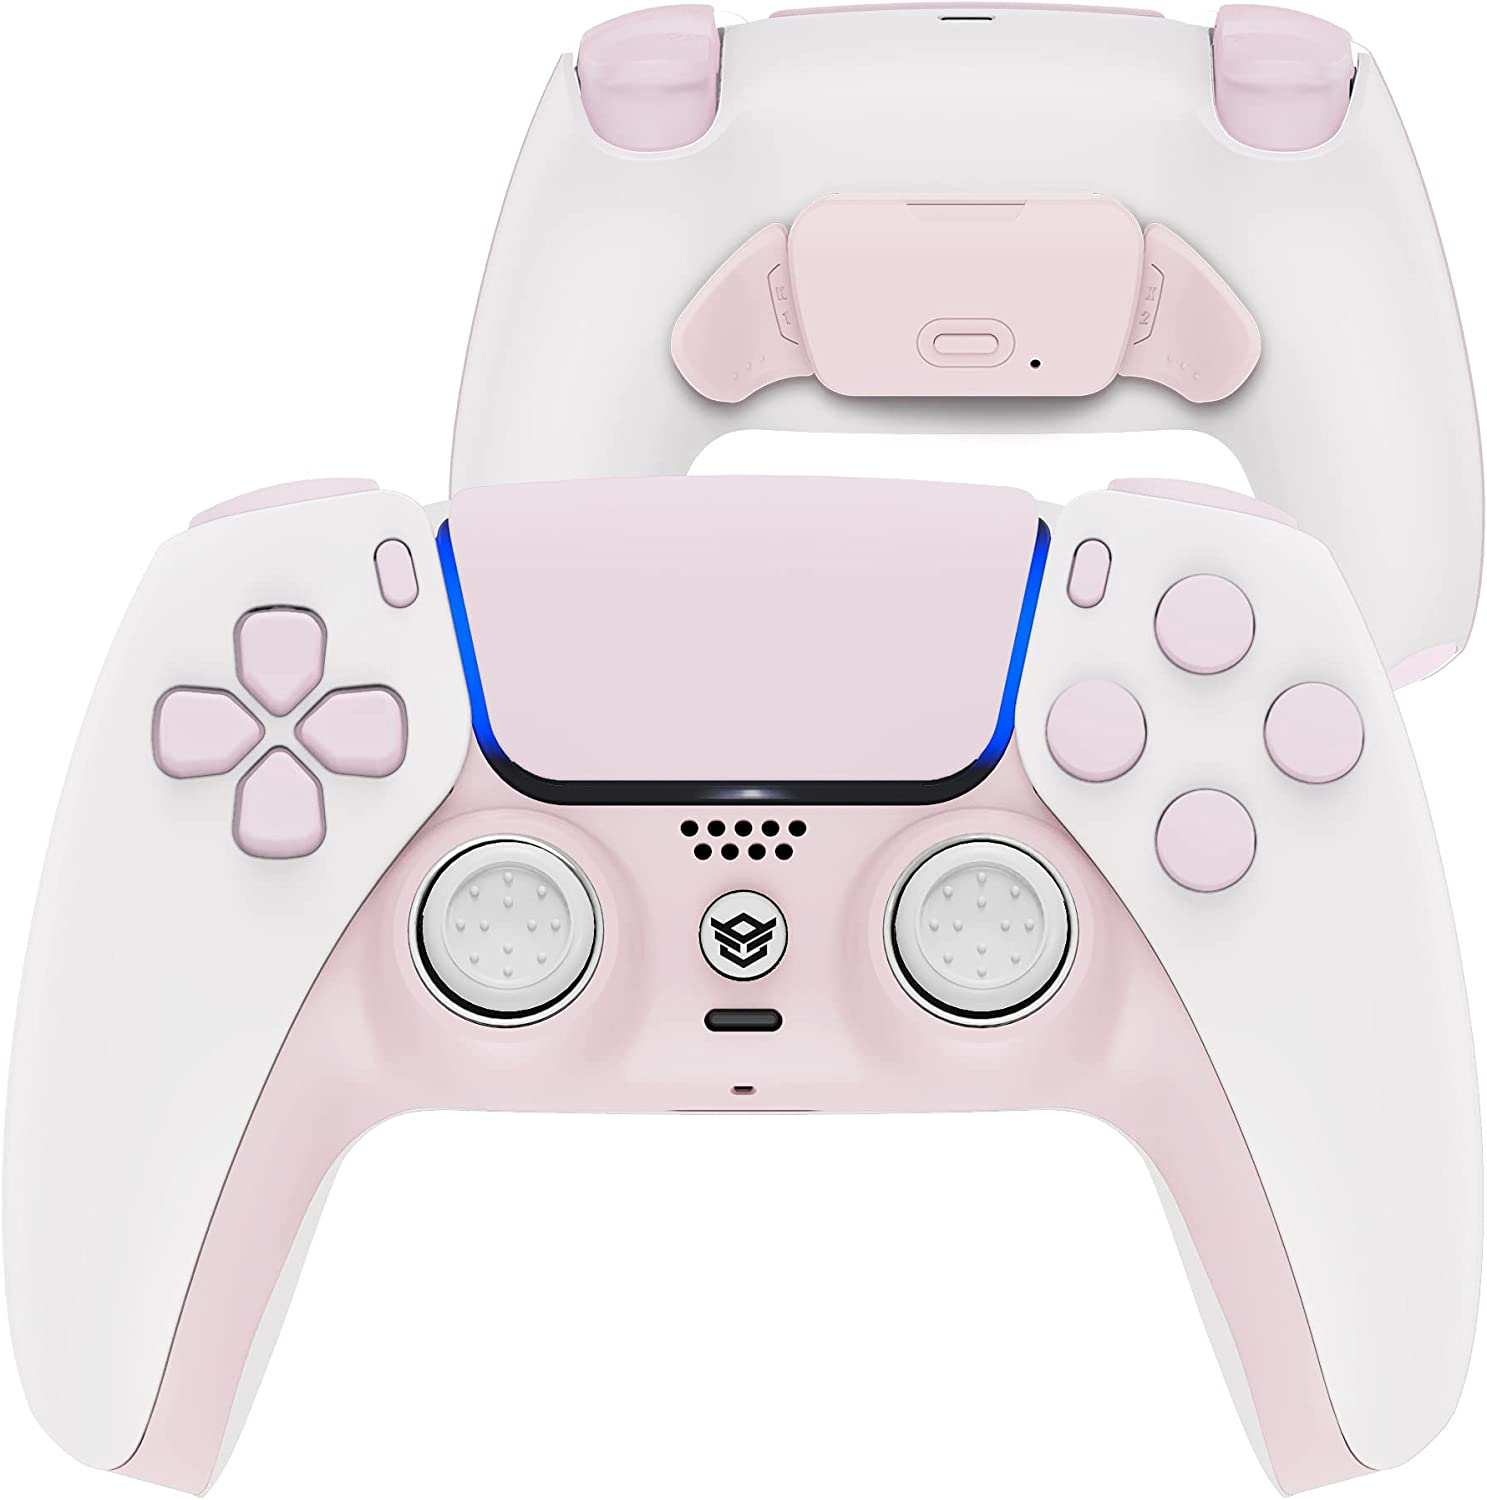 HexGaming Esports Super beauty product restock quality top Rival Controller 2 Challenge the lowest price of Japan Mappable Buttons Rear Int